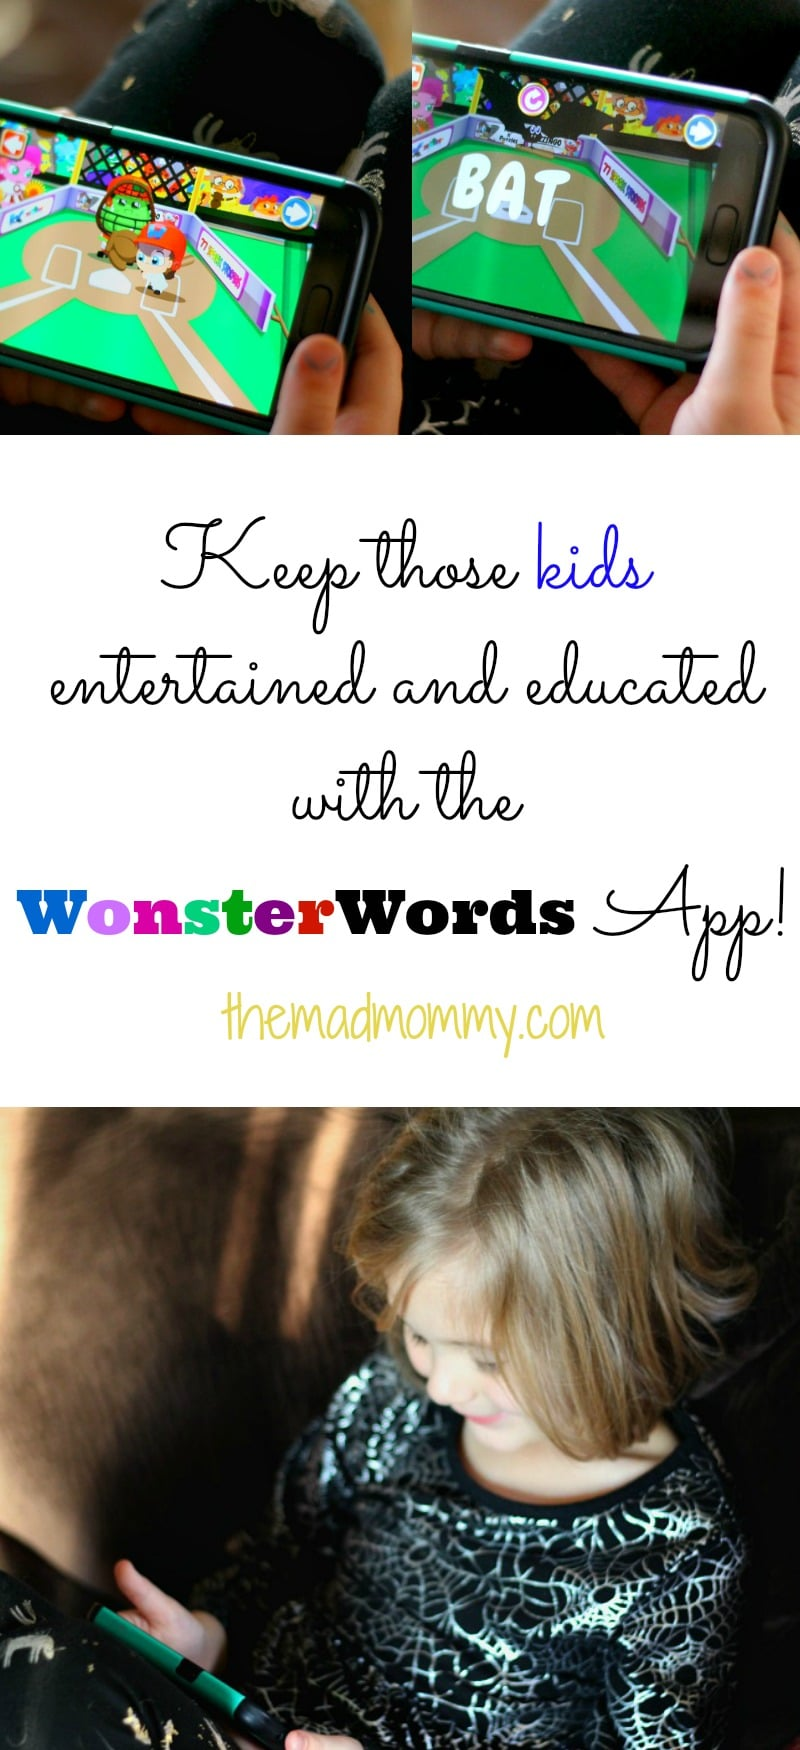 I teamed up with a great app for kids! It is called Wonster Words and it can definitely help you keep those kids entertained, educated and possibly, out of your hair for a few minutes!